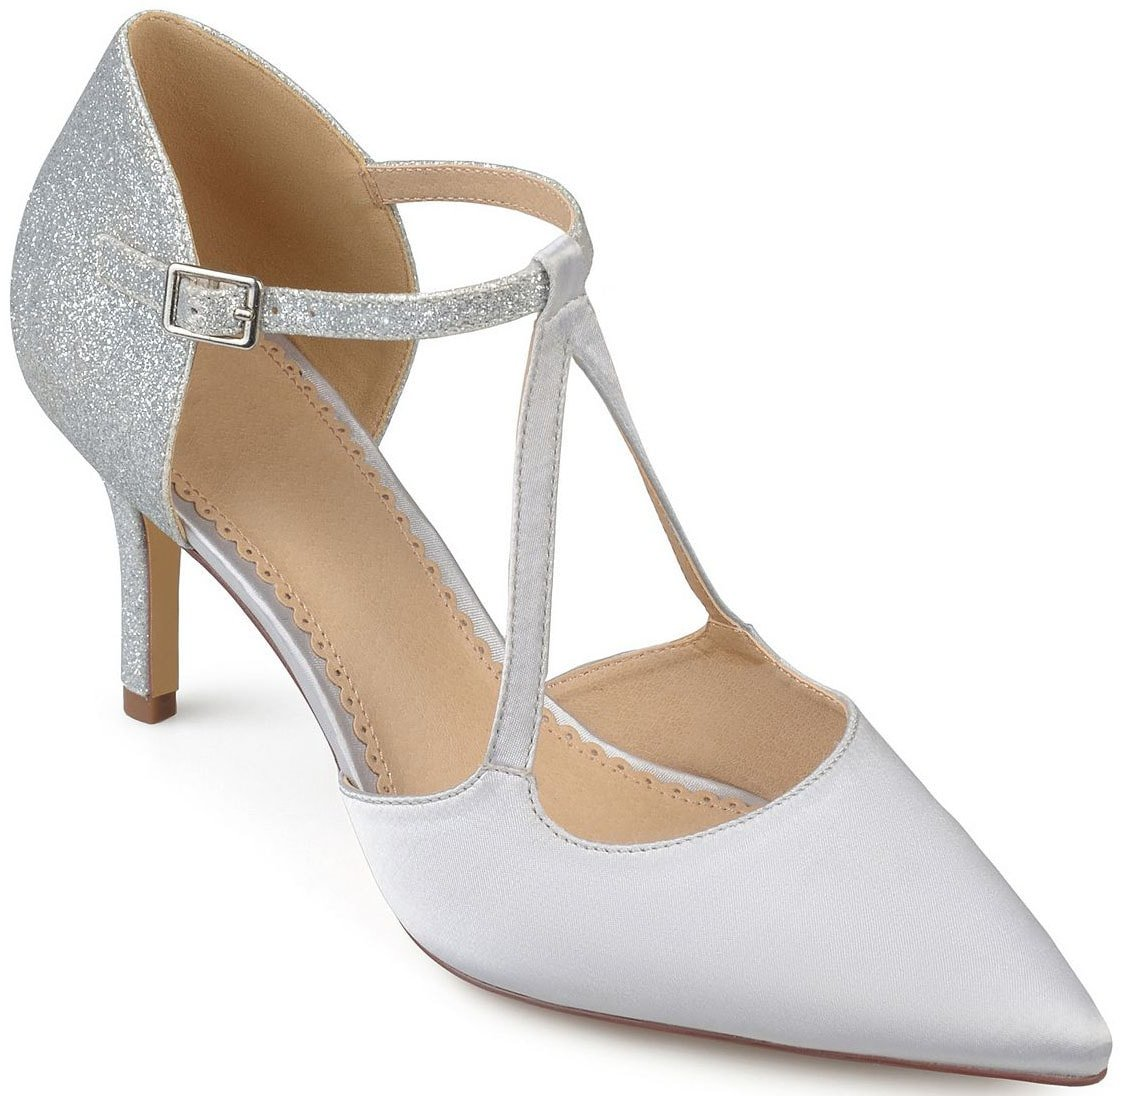 The elegant Elodie Mary Jane heels from Journee Collection feature a glittery heel panel and a sexy strappy silhouette